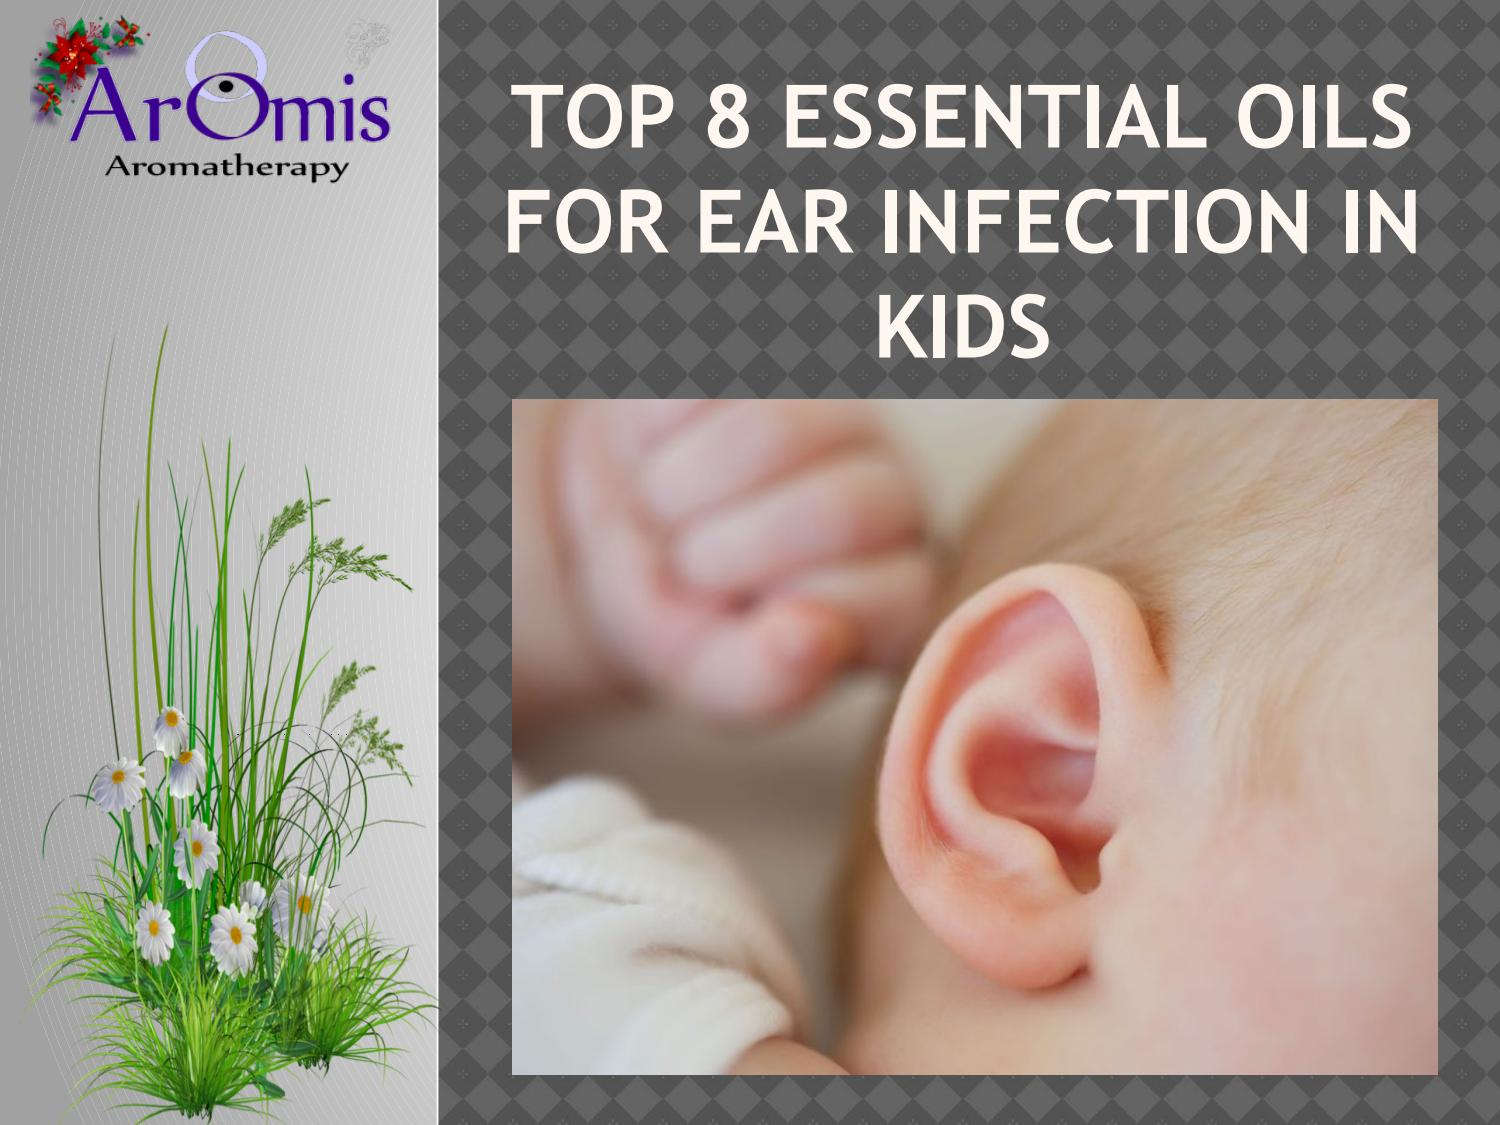 Top 8 Essential Oils For Ear Infection In Kids By Aromisltd Issuu